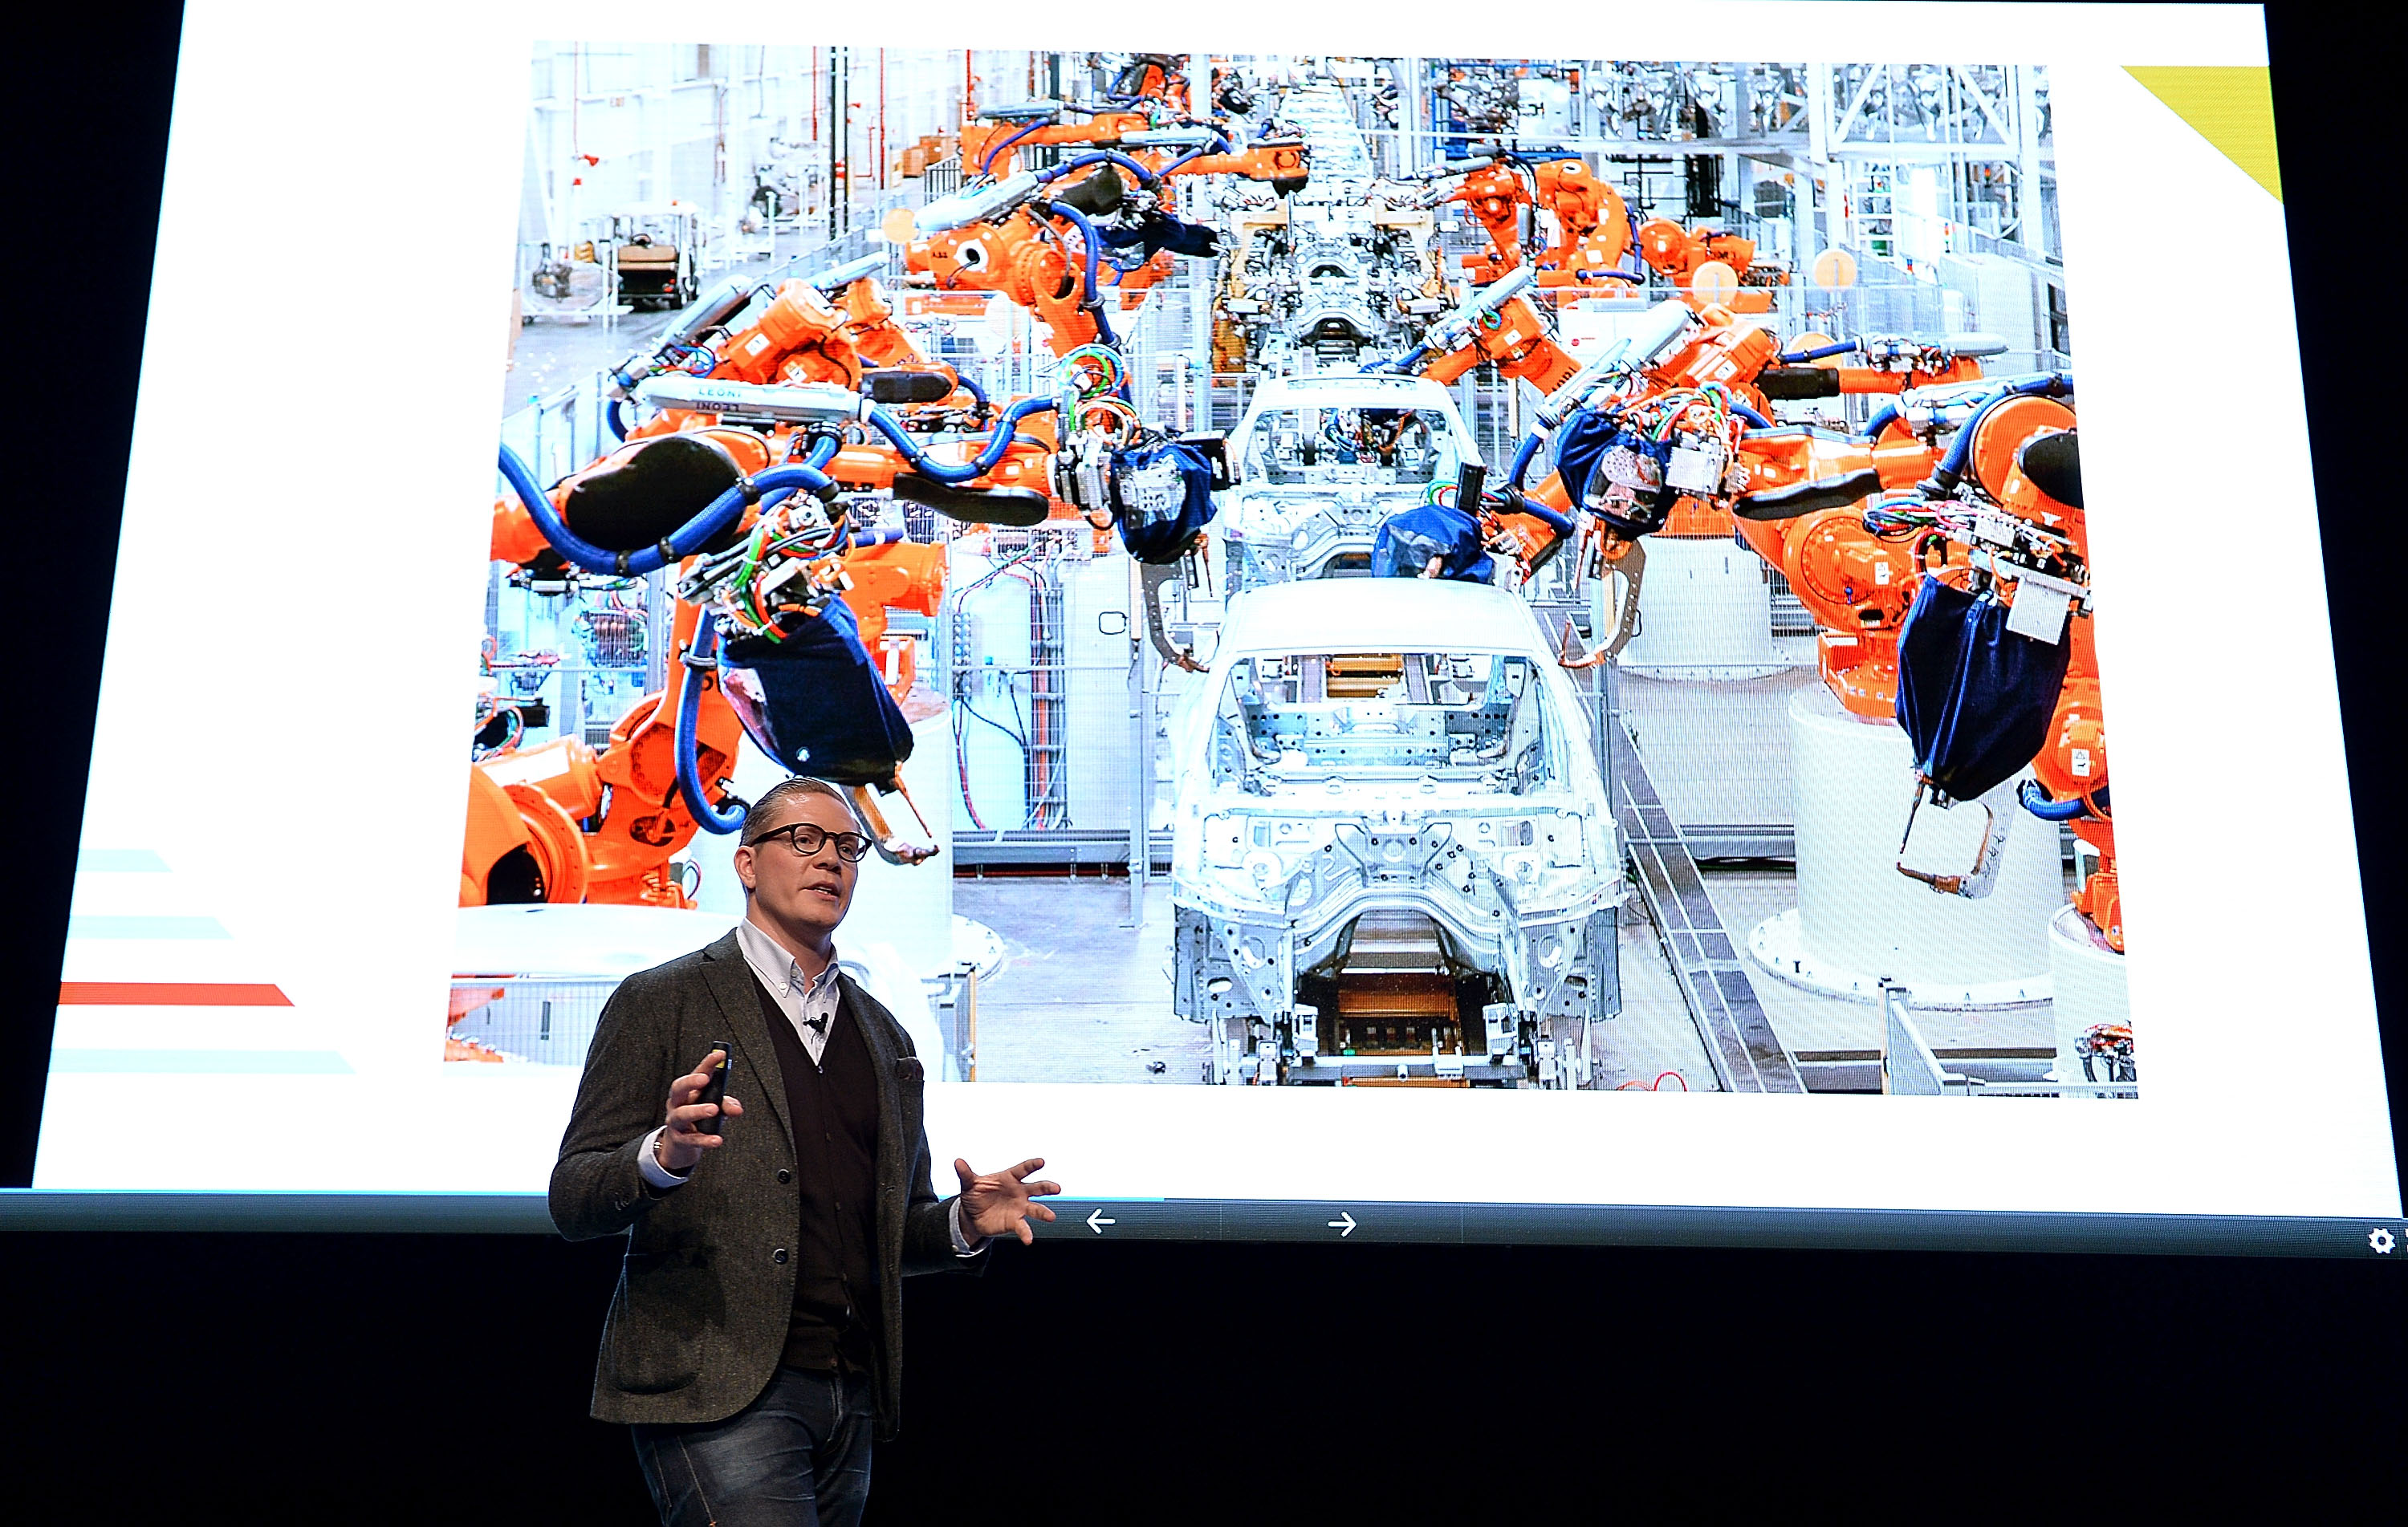 Jaguar Land Rover Futurist Anders Sorman-Nilsson Technology with Heart